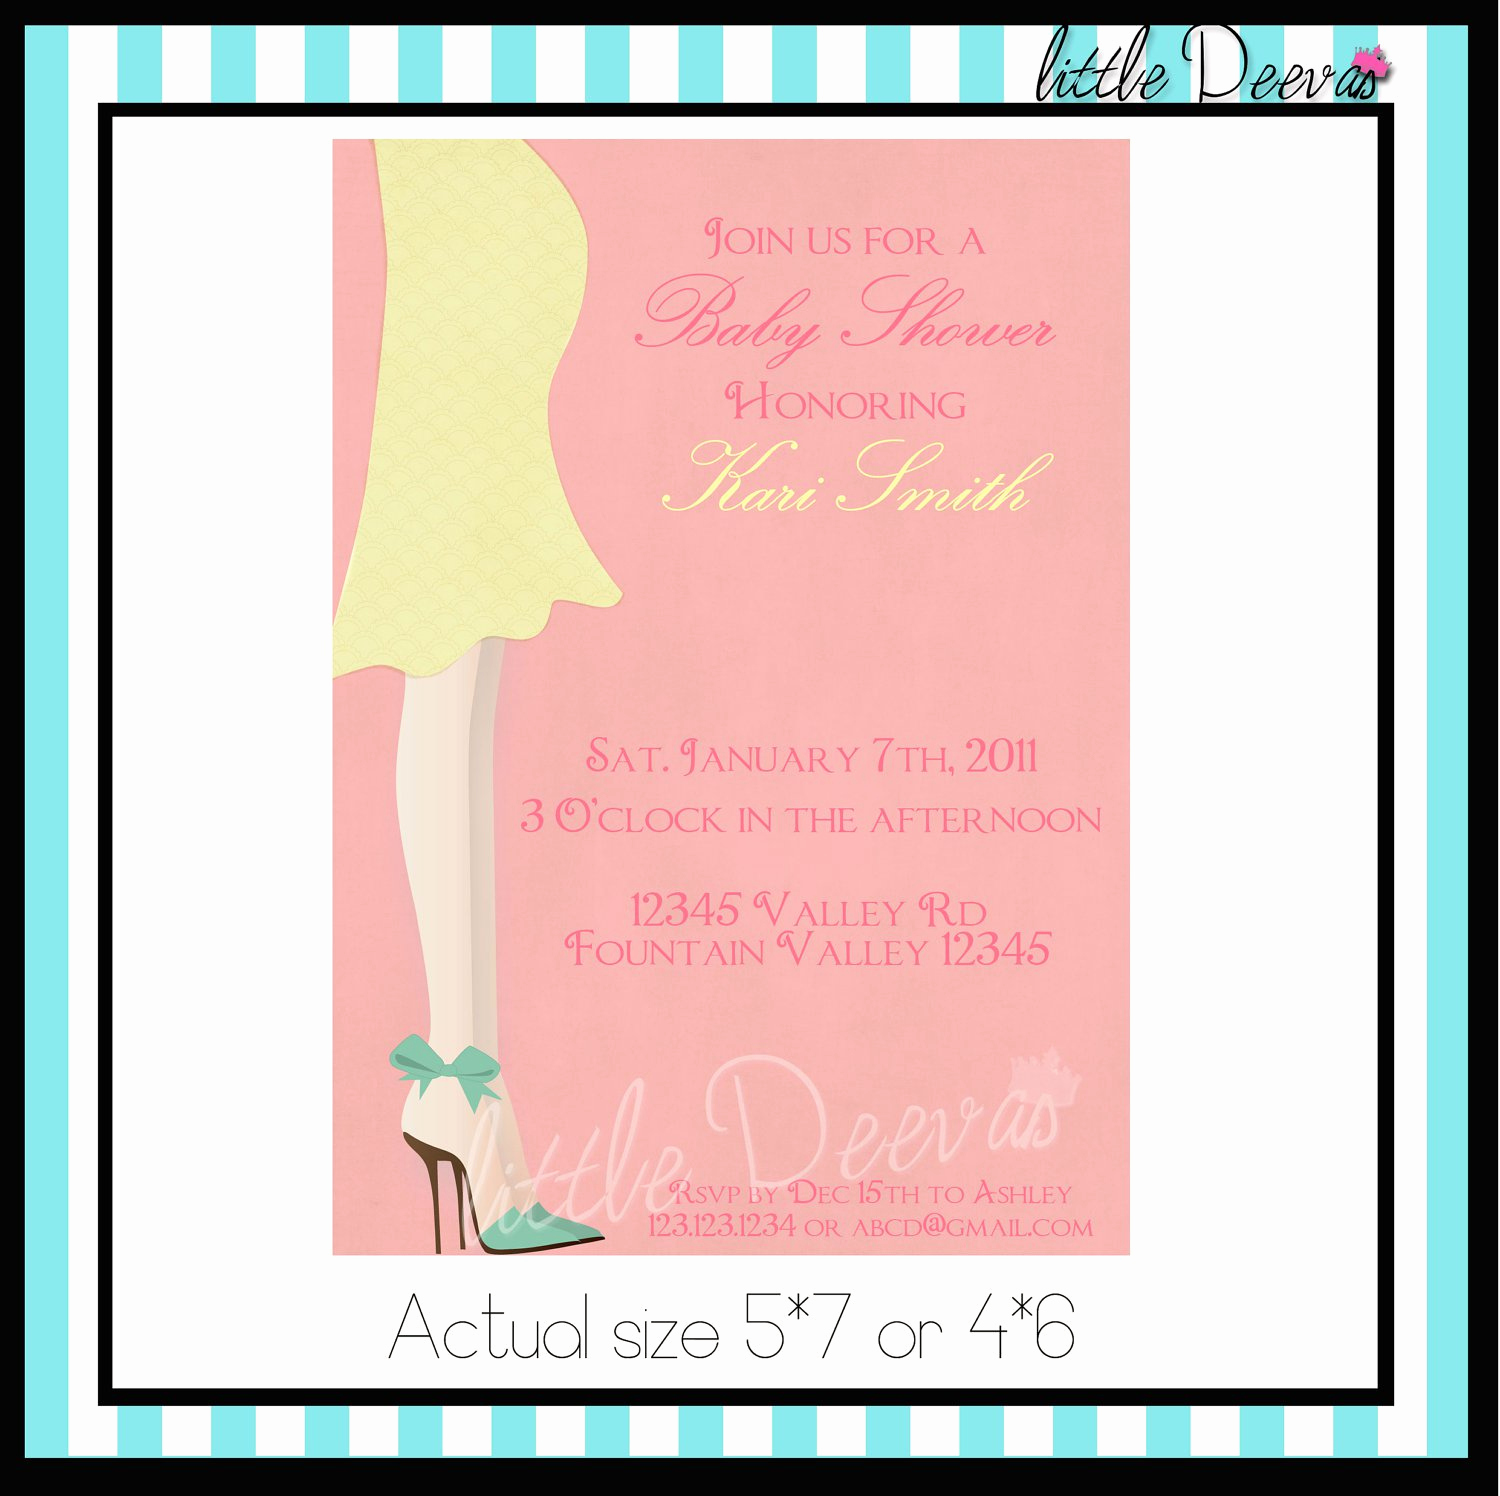 3rd Baby Shower Invitation Wording Awesome Birthday Invitation Mickey Mouse Birthday Invitations